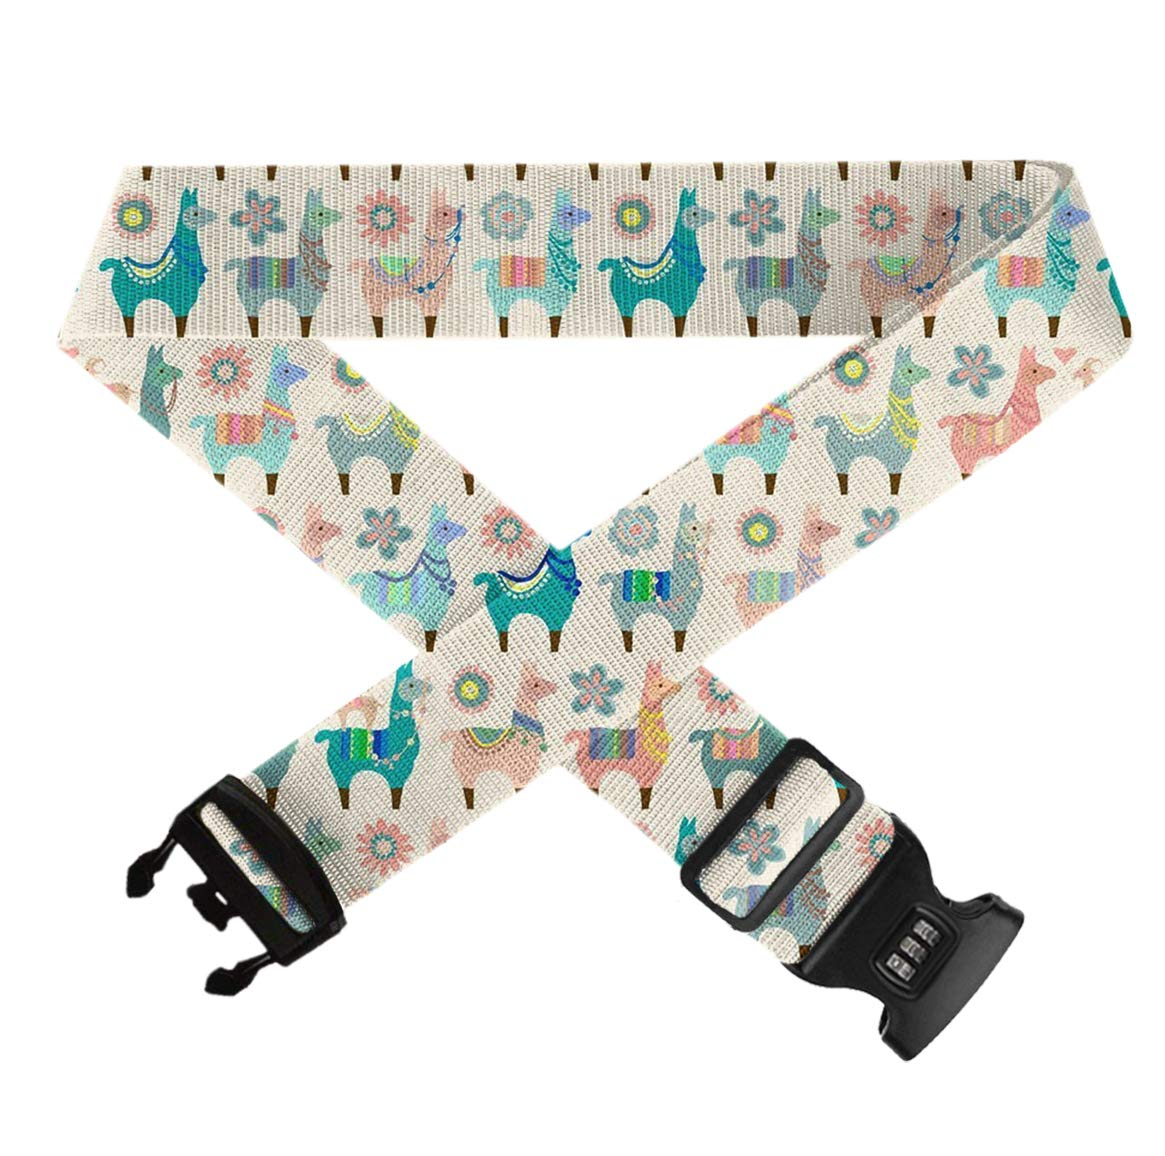 GLORY ART 1 Pack Colorful Llama Fun Travel Suitcase Belt Heavy Duty Quick Connect Buckle Luggage Strap TSA Approved Lock Travel Accessories